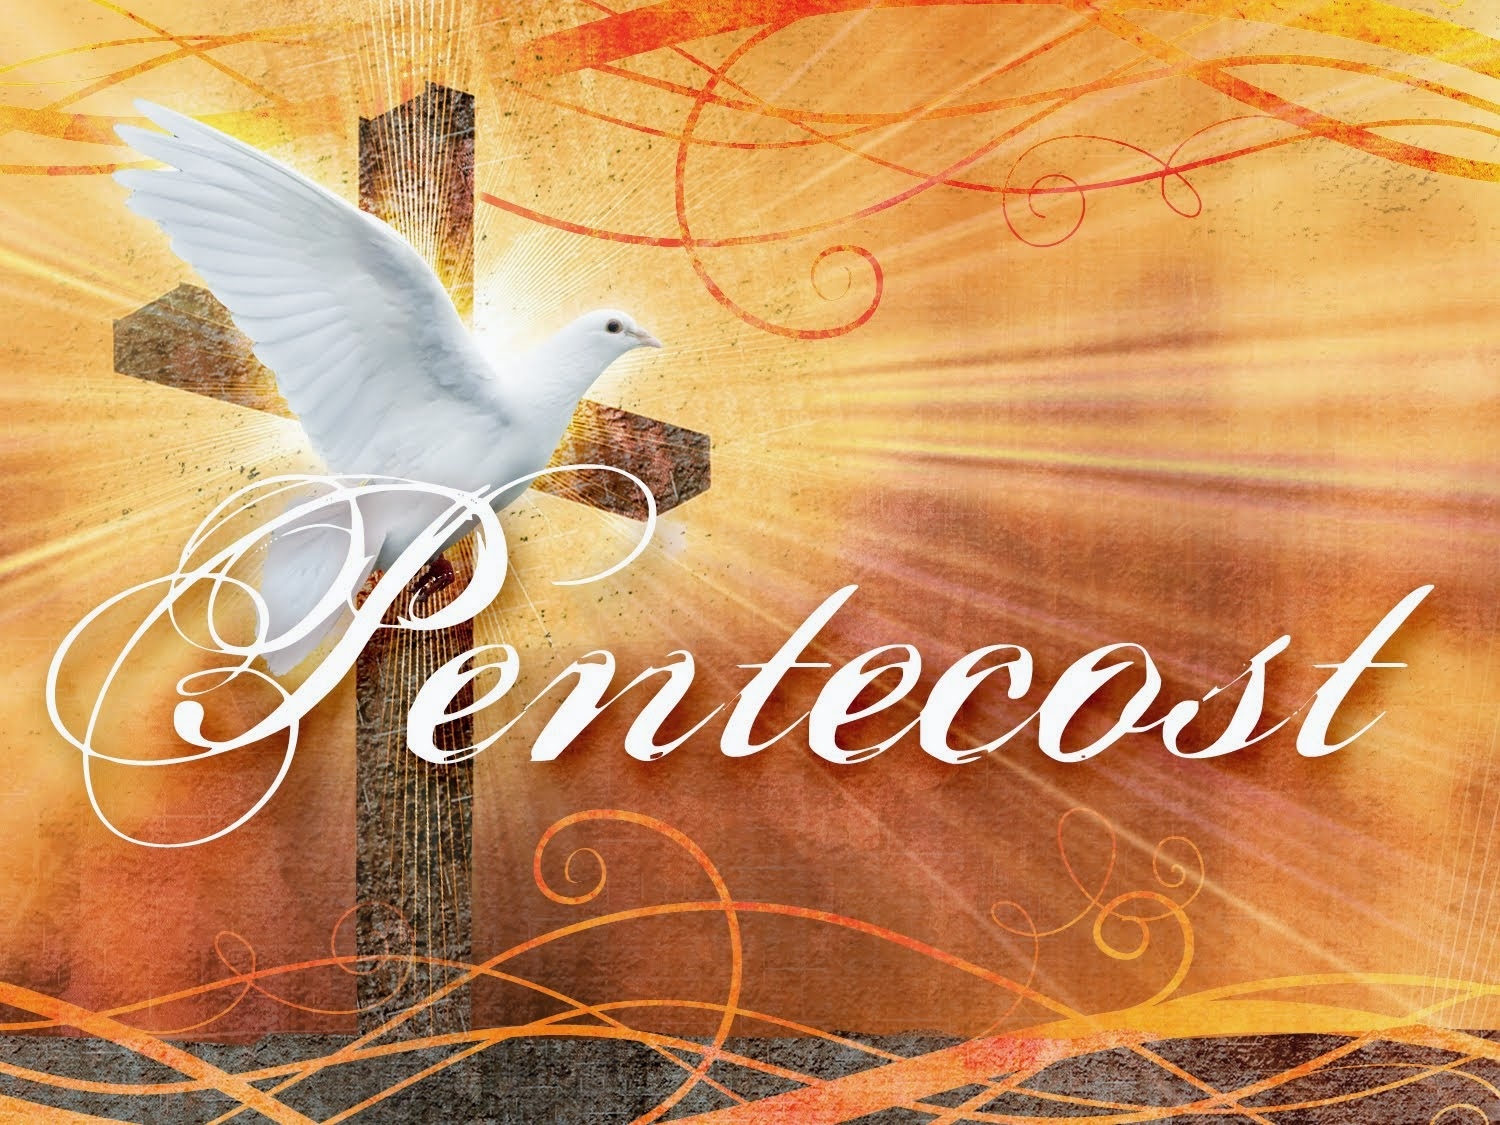 pentecost - photo #32